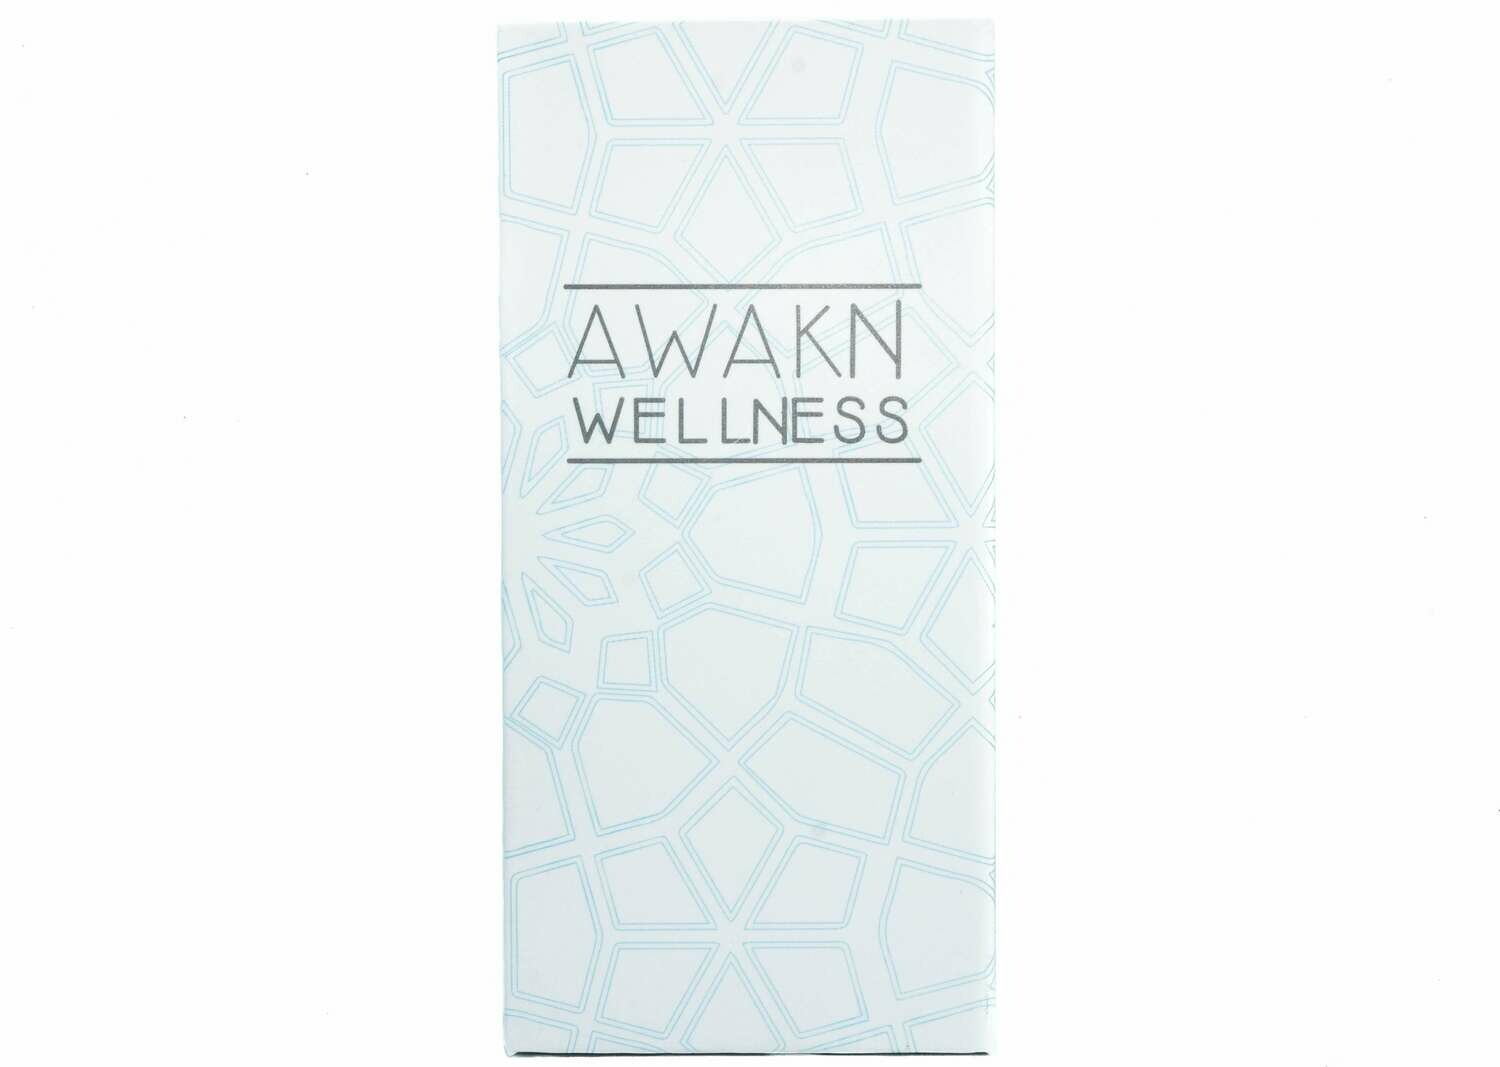 Watermelon (Full Spectrum) CBD Vape Kit by Awakn Wellness